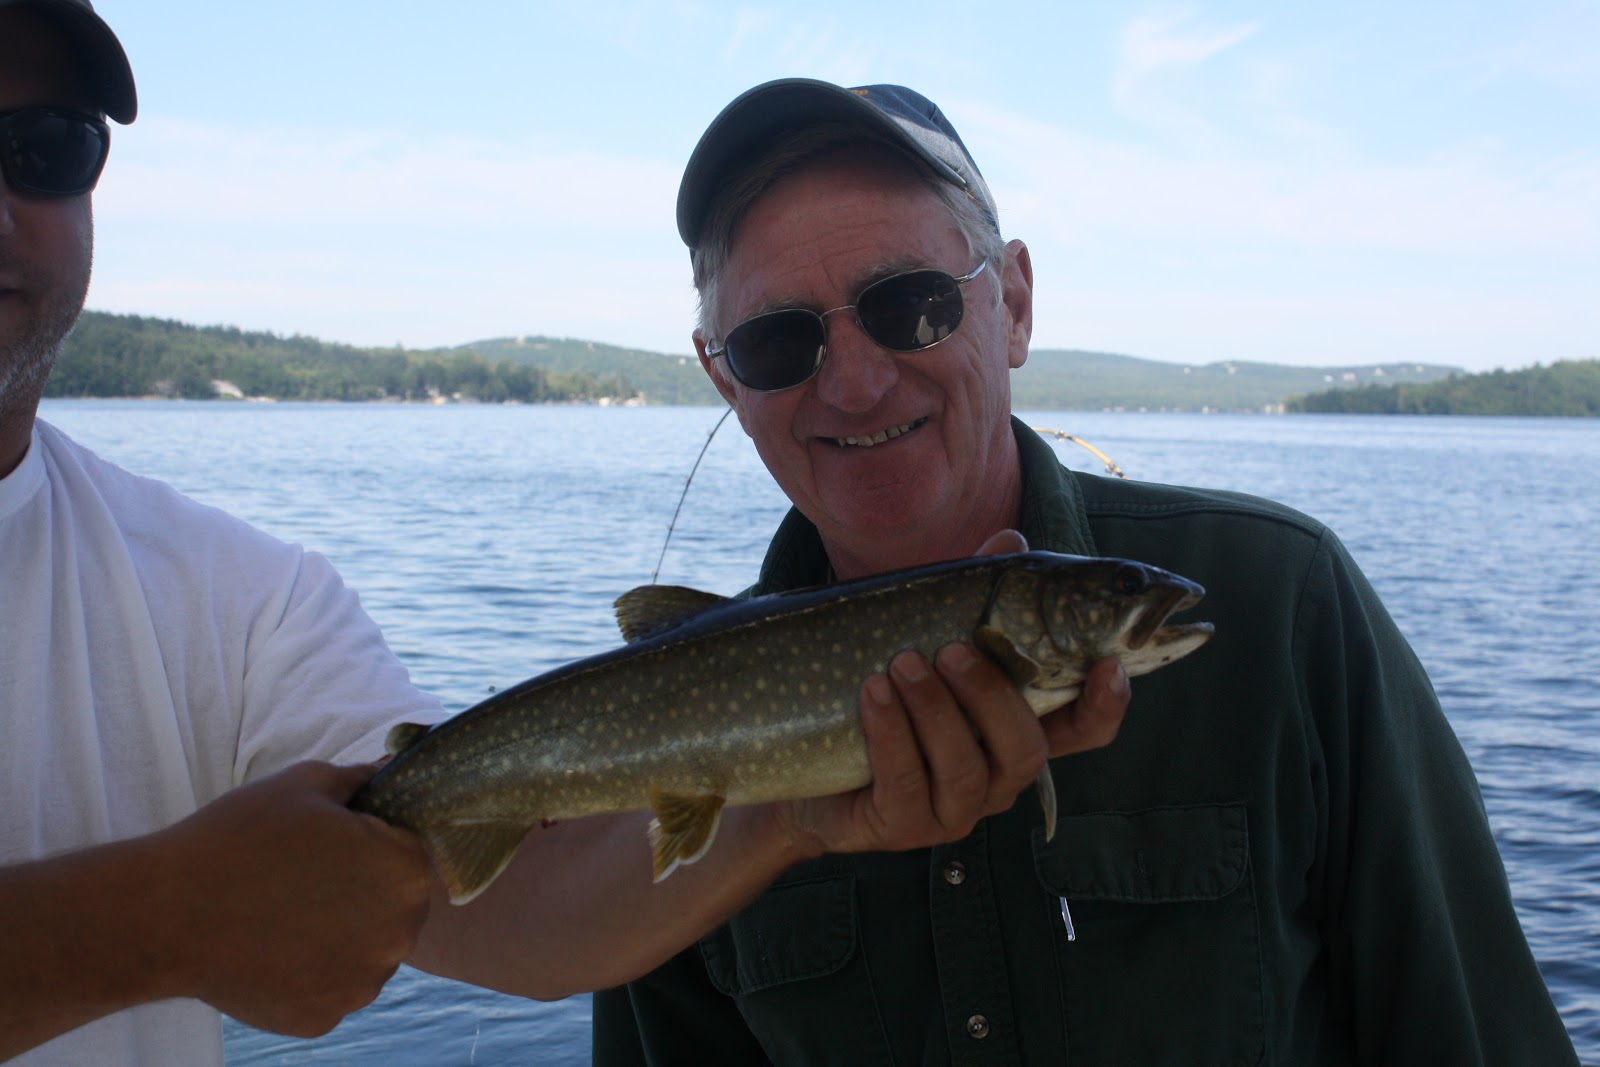 Catch m all old man groves of the sea fish 30 lake trout for Fish at 30 lake